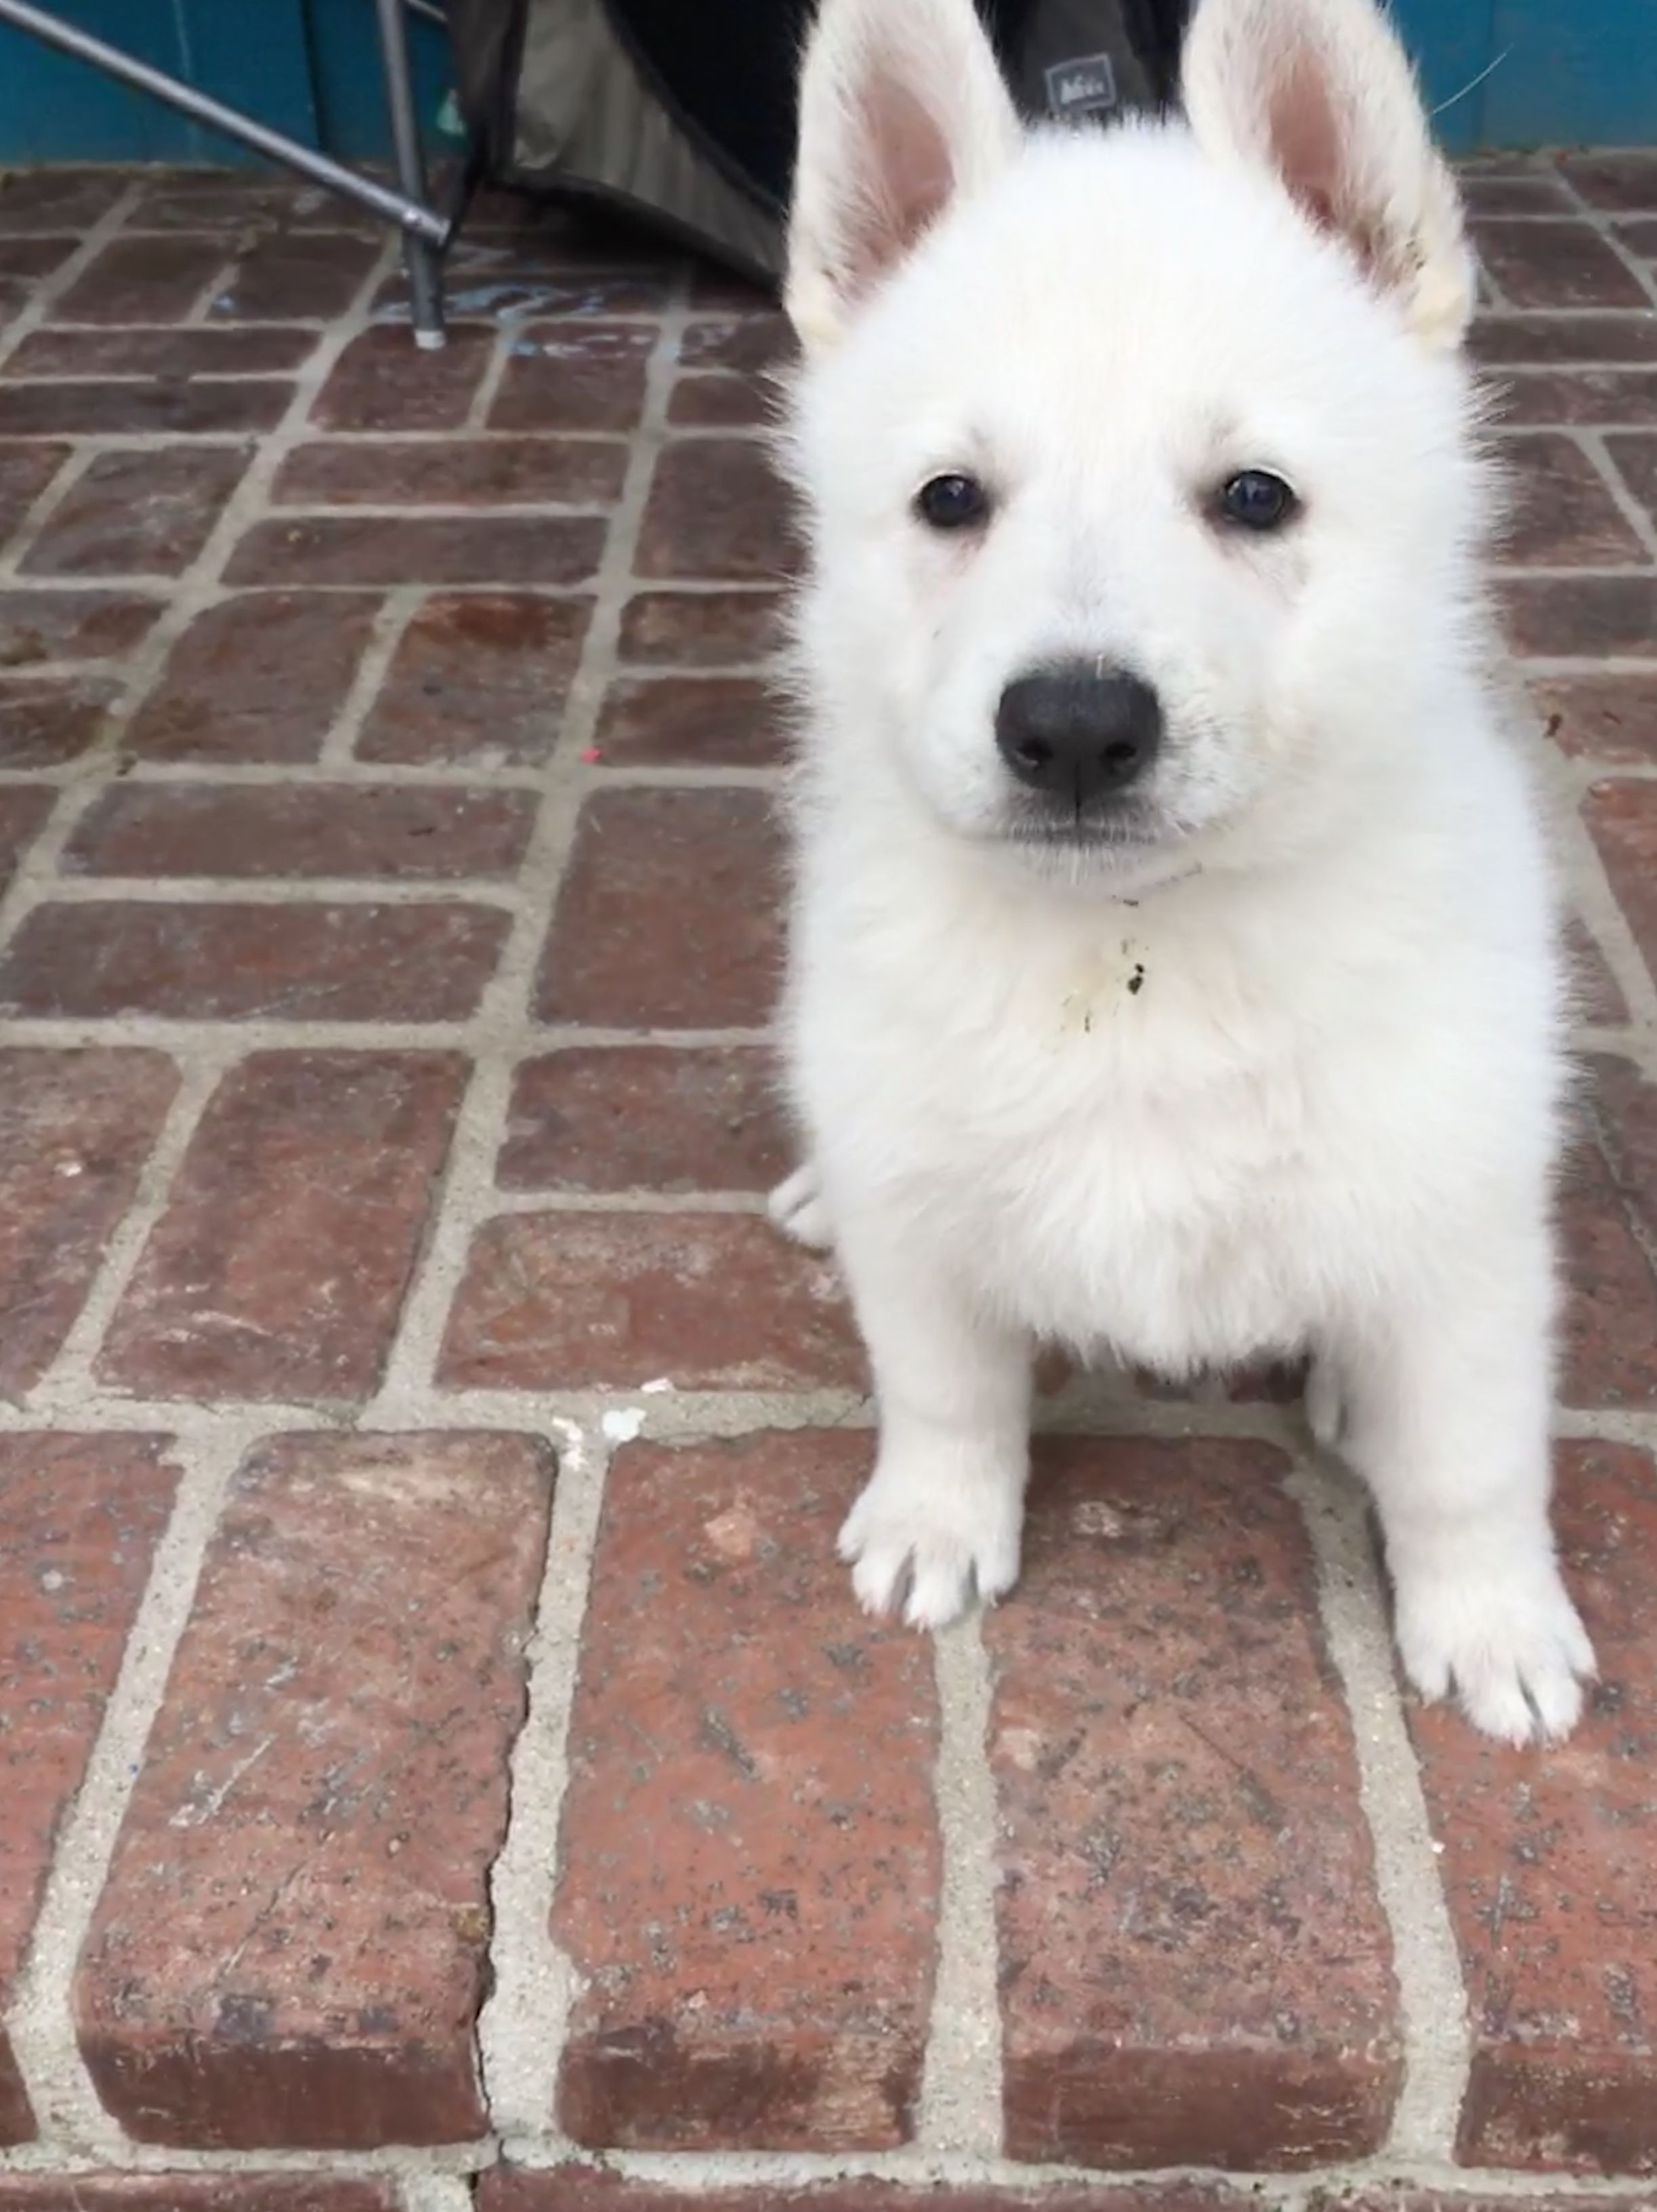 Purple Girl A Female Ukc White Shepherd Puppy For Sale In California Find Cute White Shepherd Puppies And Responsi Puppies Shepherd Puppies Pet Dogs Puppies